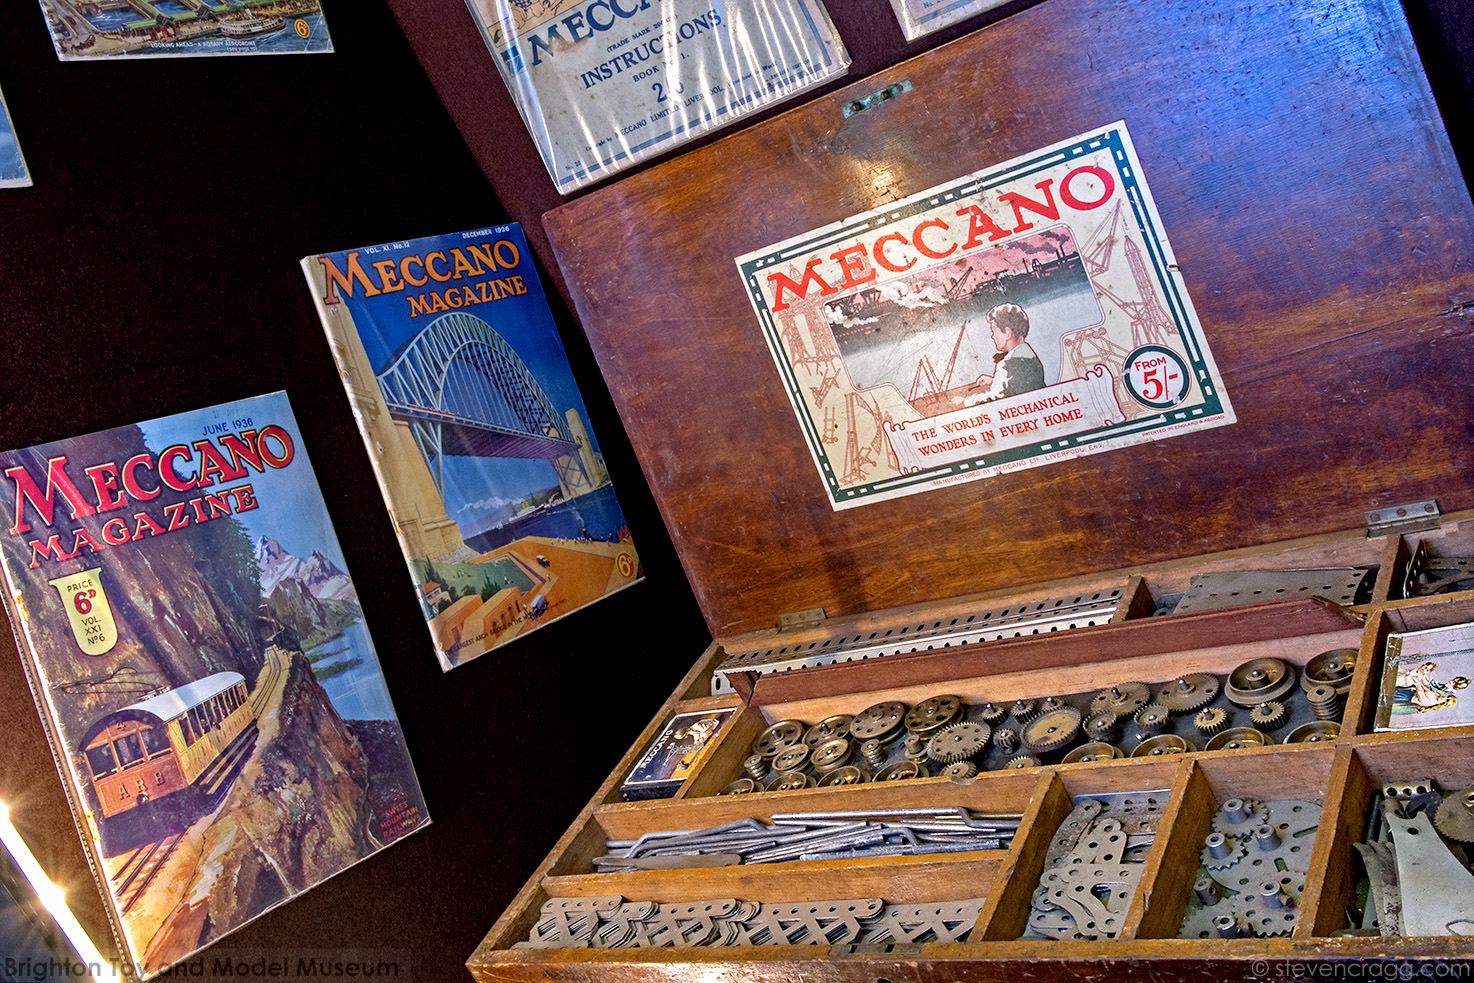 Photograph at an angle of an open box of Mexxano on the right and copies of Meccanno magazine on the left